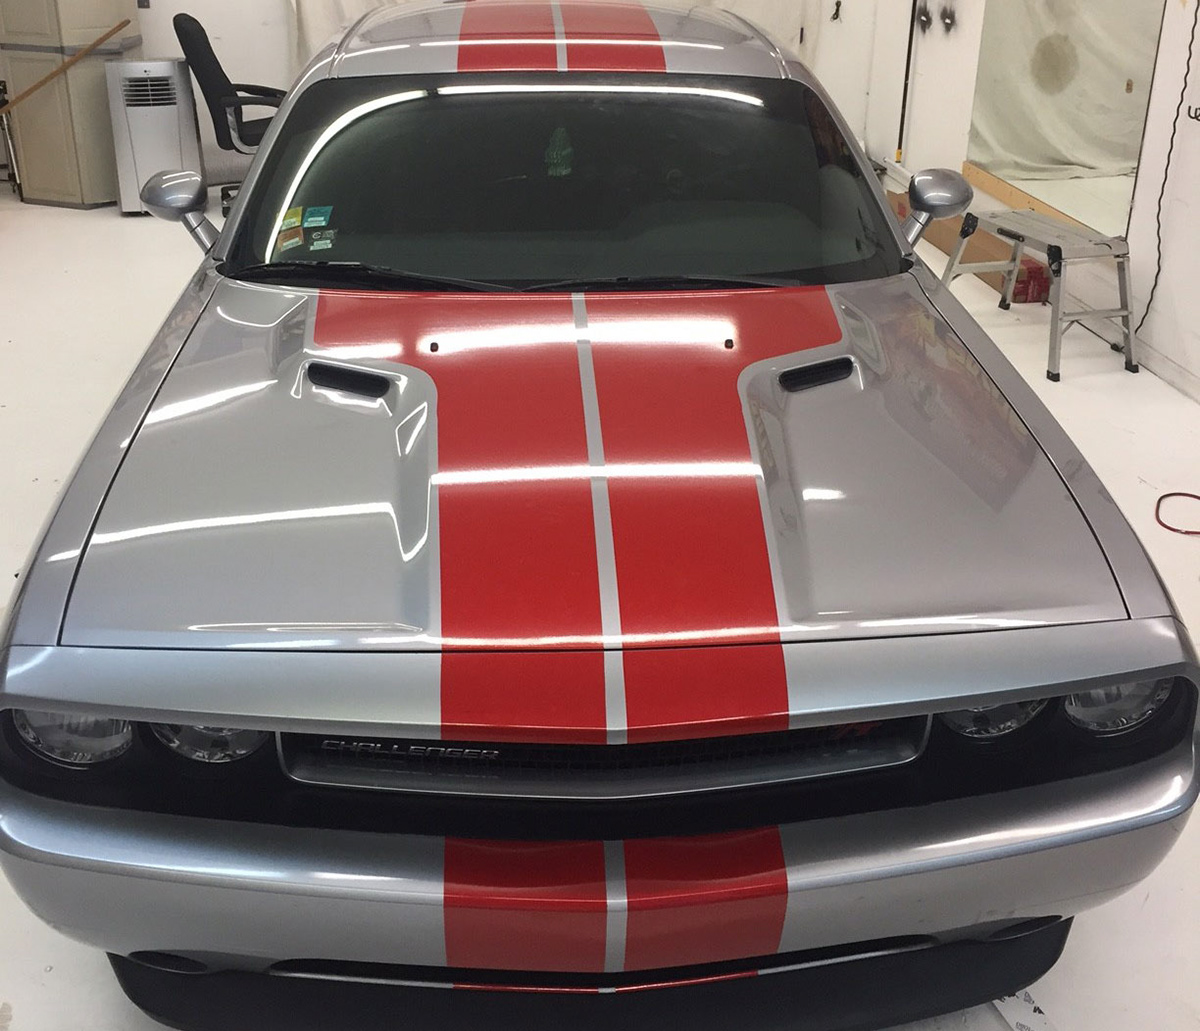 Custom Red Rally Racing Stripes On This Silver Dodge Challenger